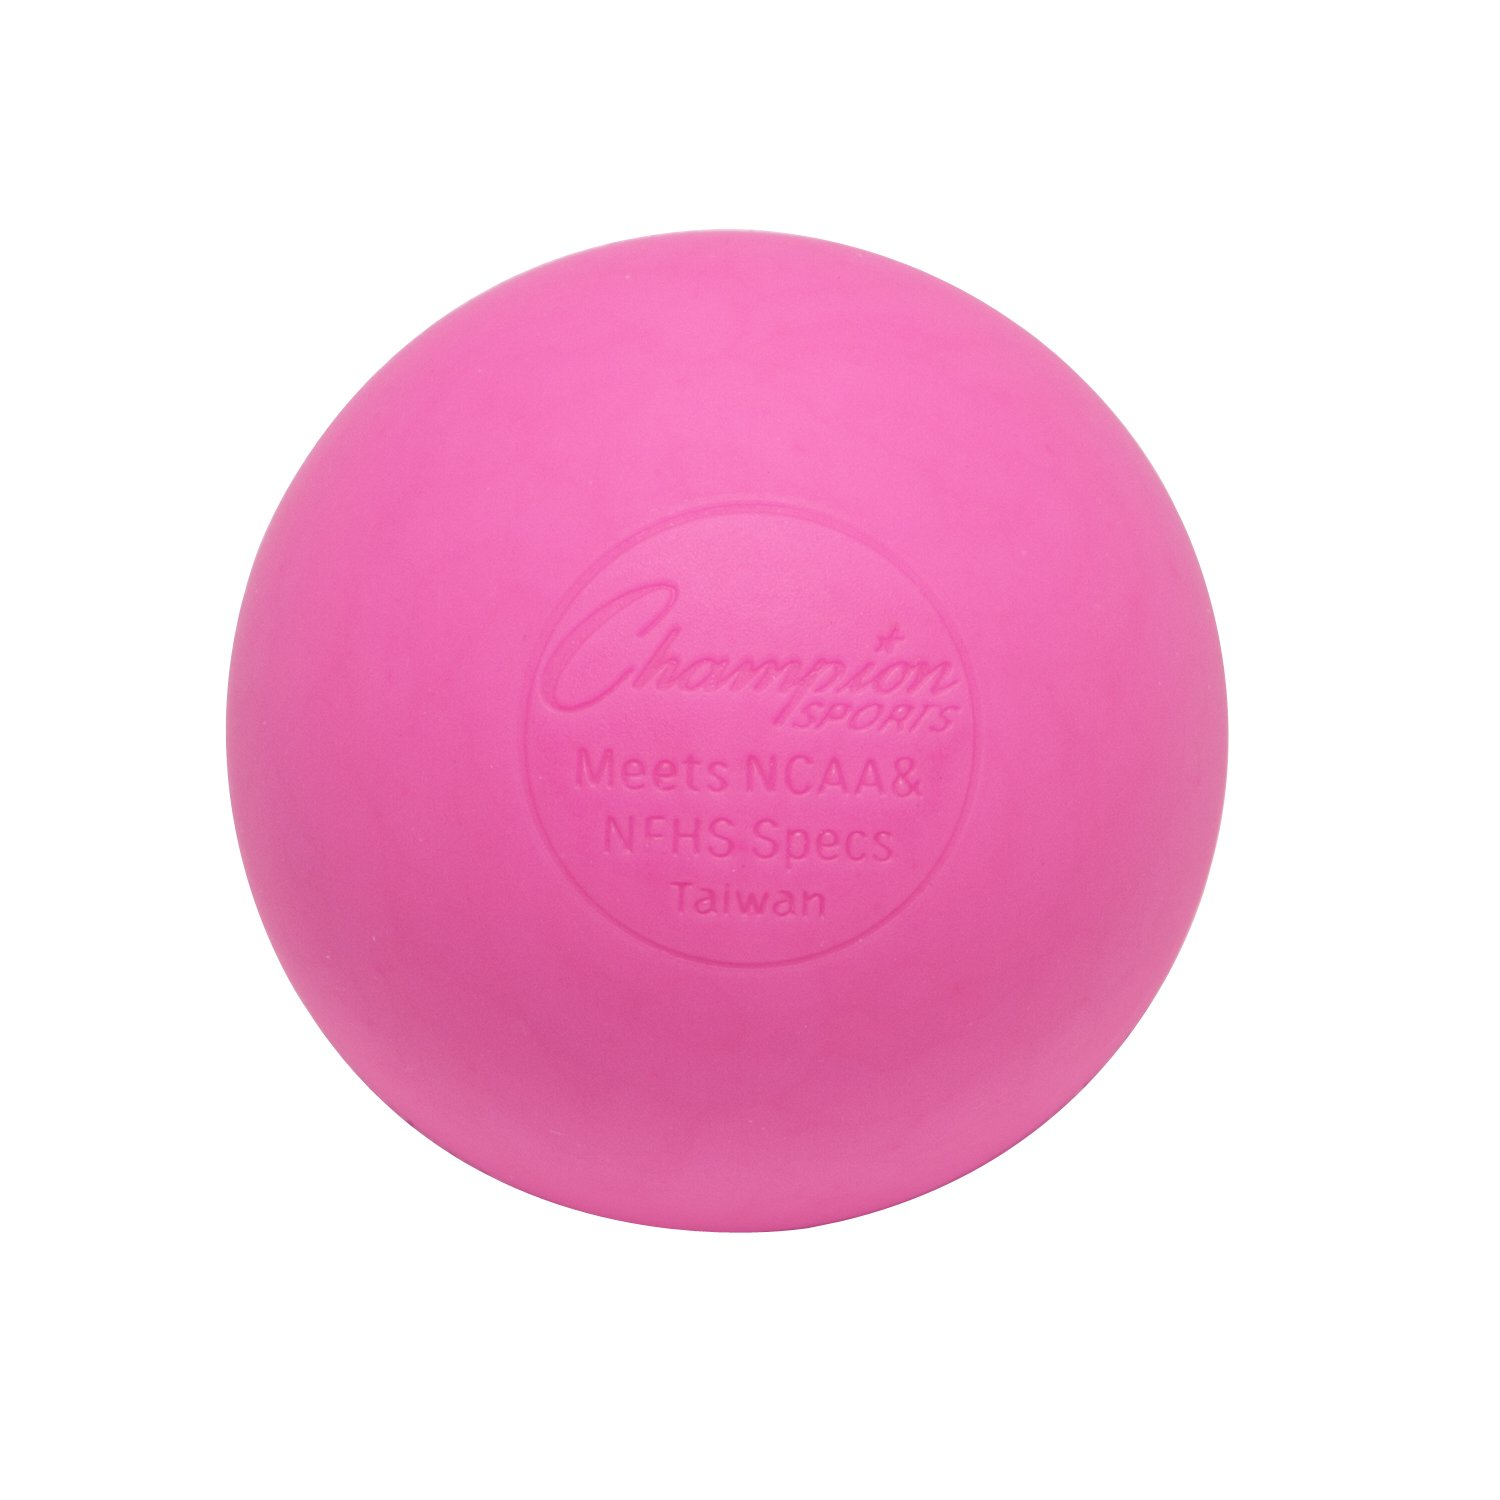 Champion Sports Colored Lacrosse Balls: Pink Official Size for Professional, College & Grade School Games - NCAA, NFHS, Certified - Multi Count Packs